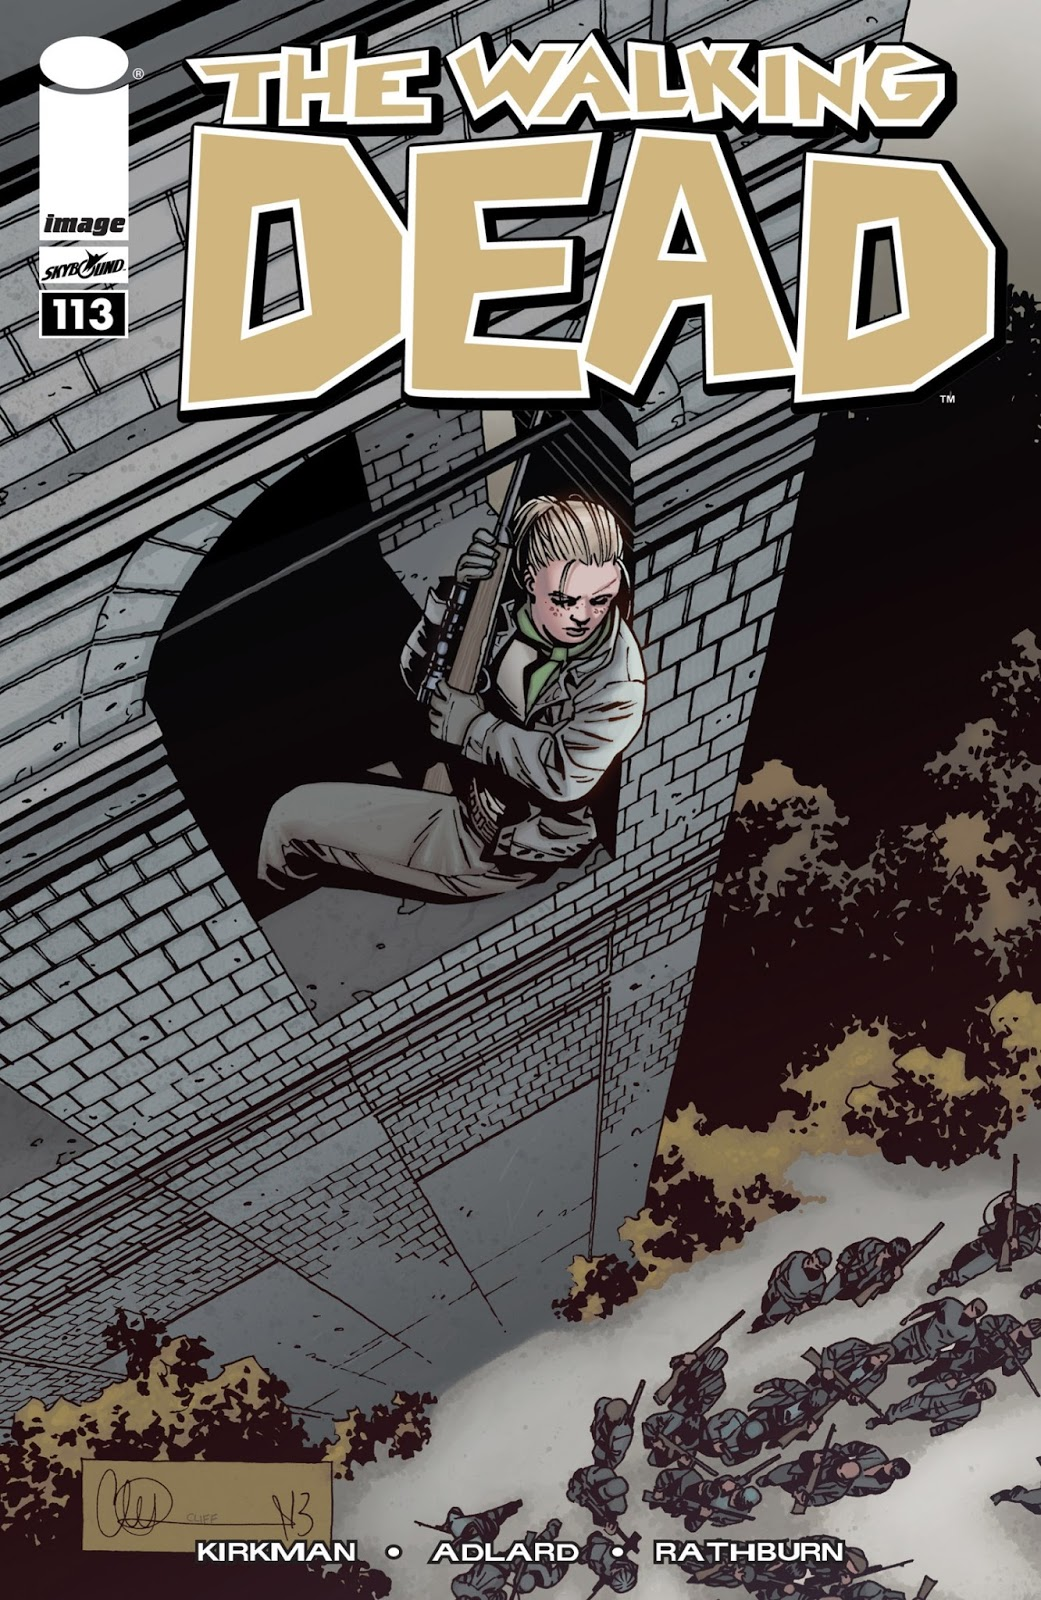 The Walking dead cómic 113